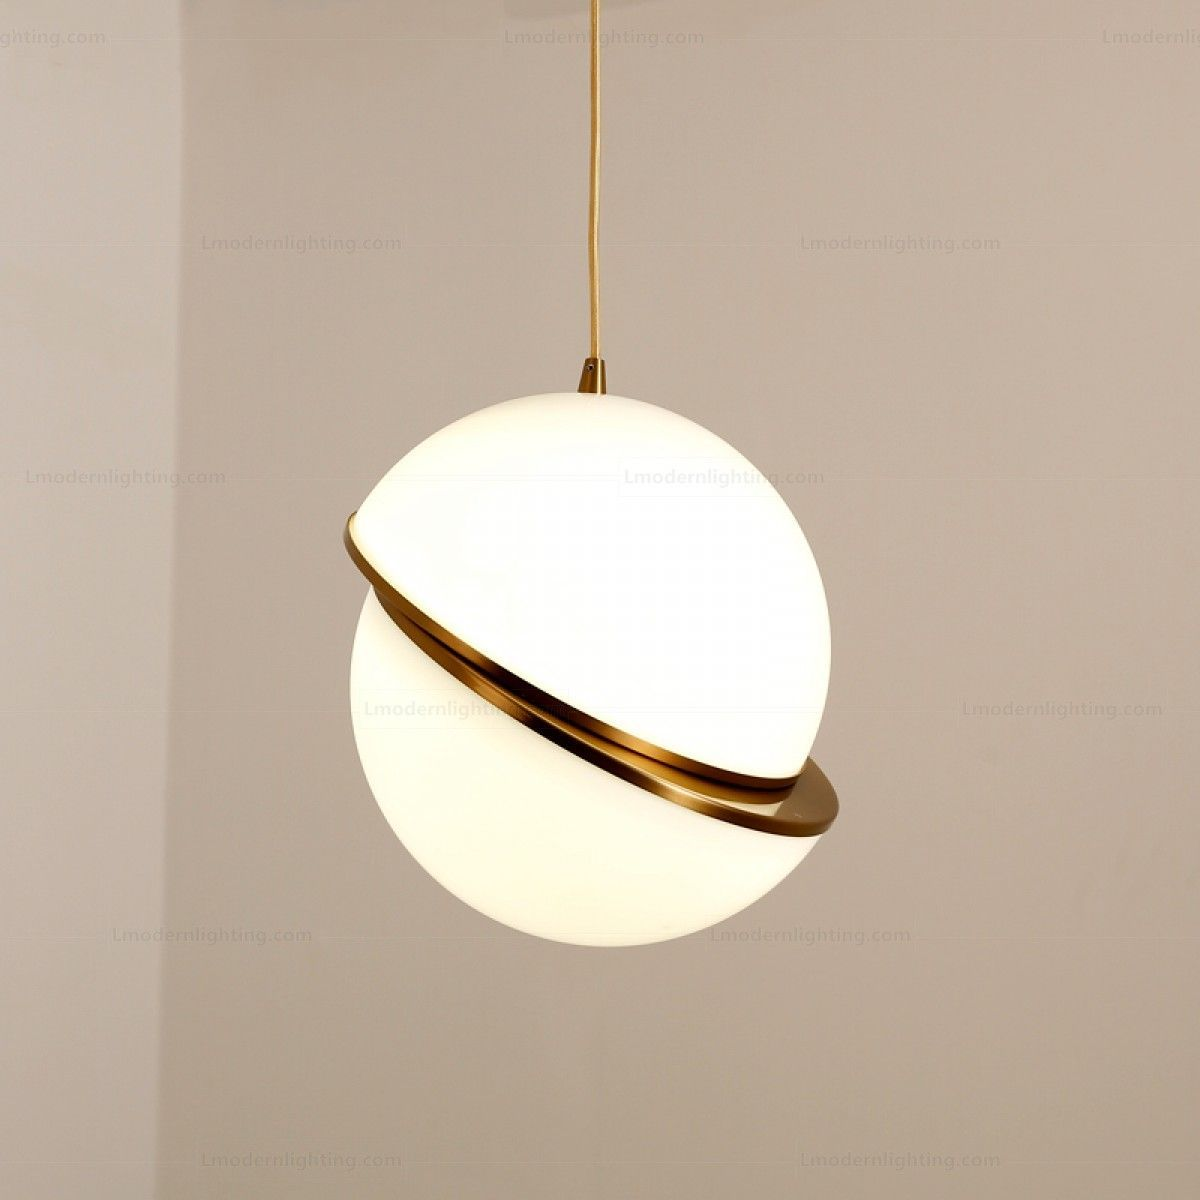 white pendant with angled half cut in the middle with golden accents and rod